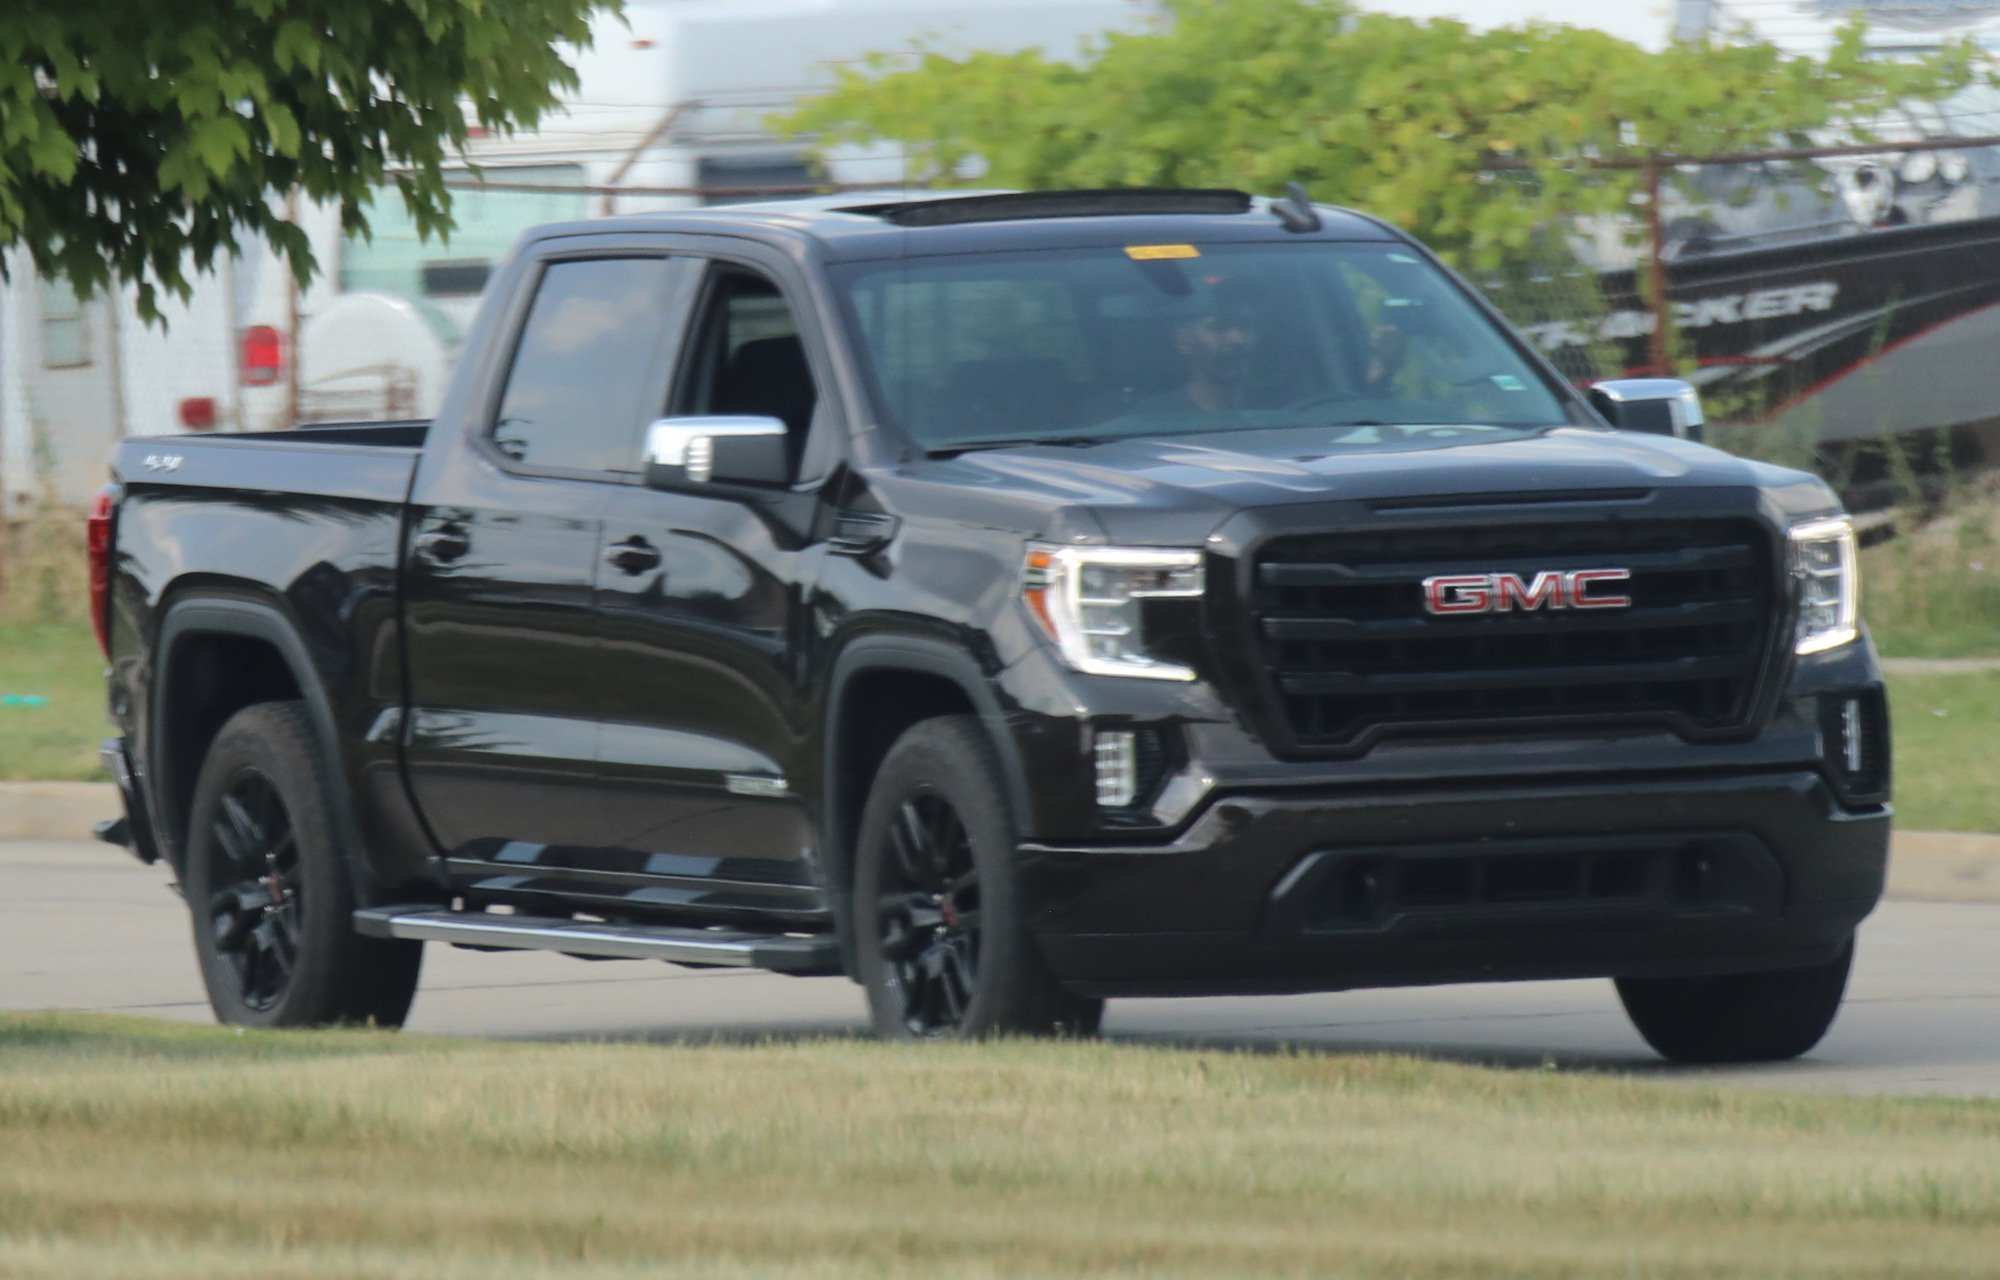 19 New 2019 Gmc Sierra Release Date Specs and Review for 2019 Gmc Sierra Release Date